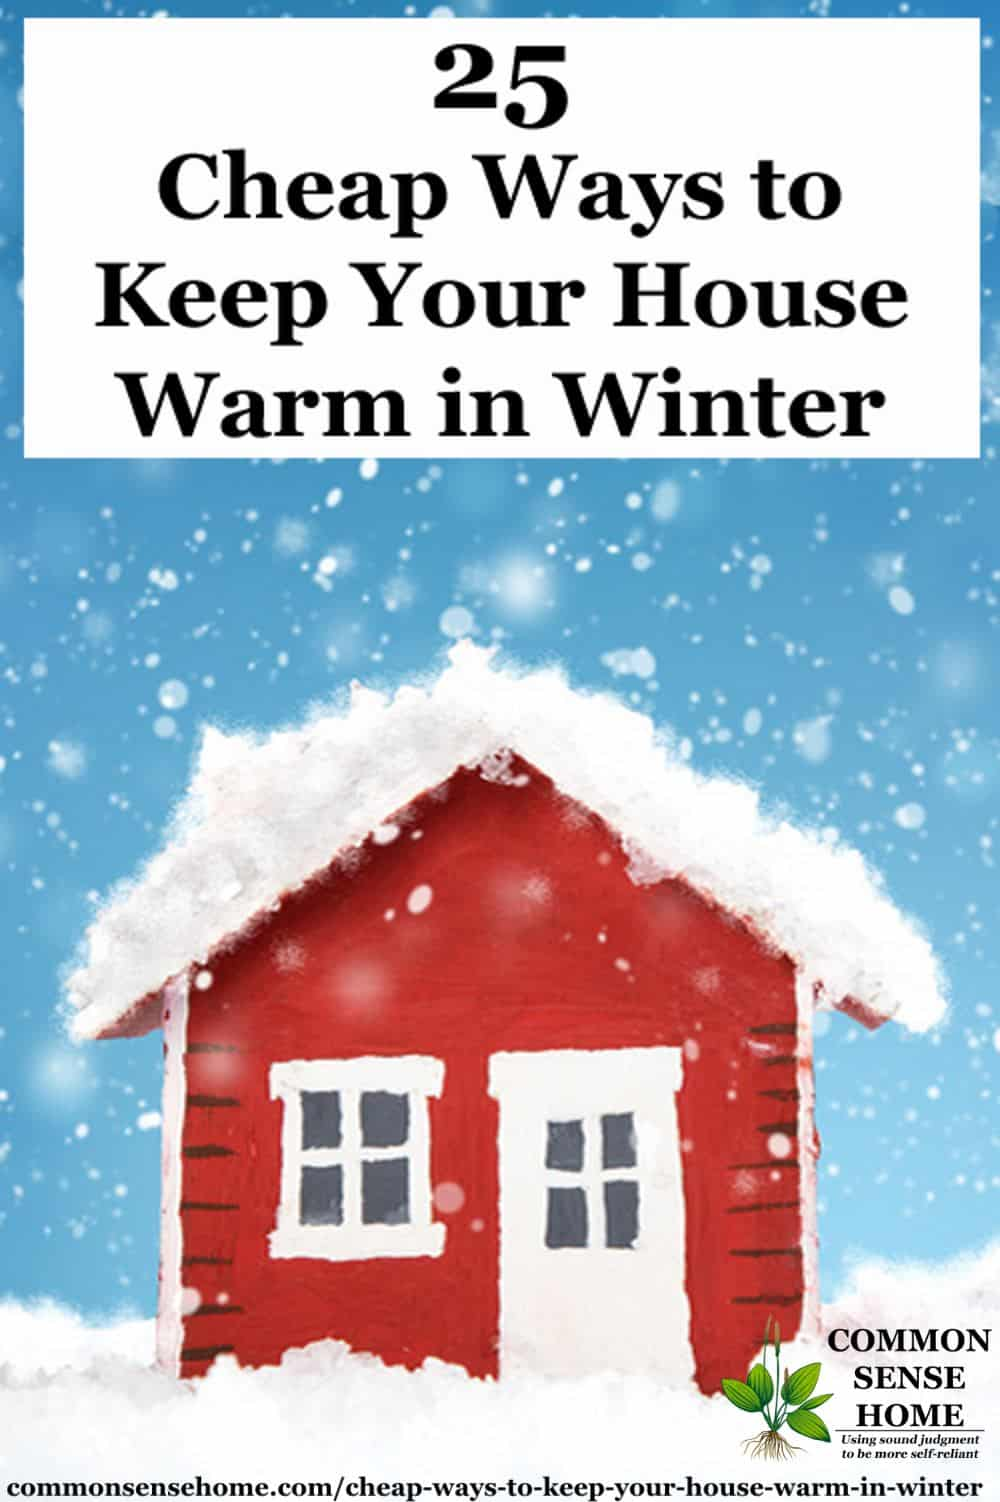 Red House In Winter With Snow Text 25 Ways To Keep Your